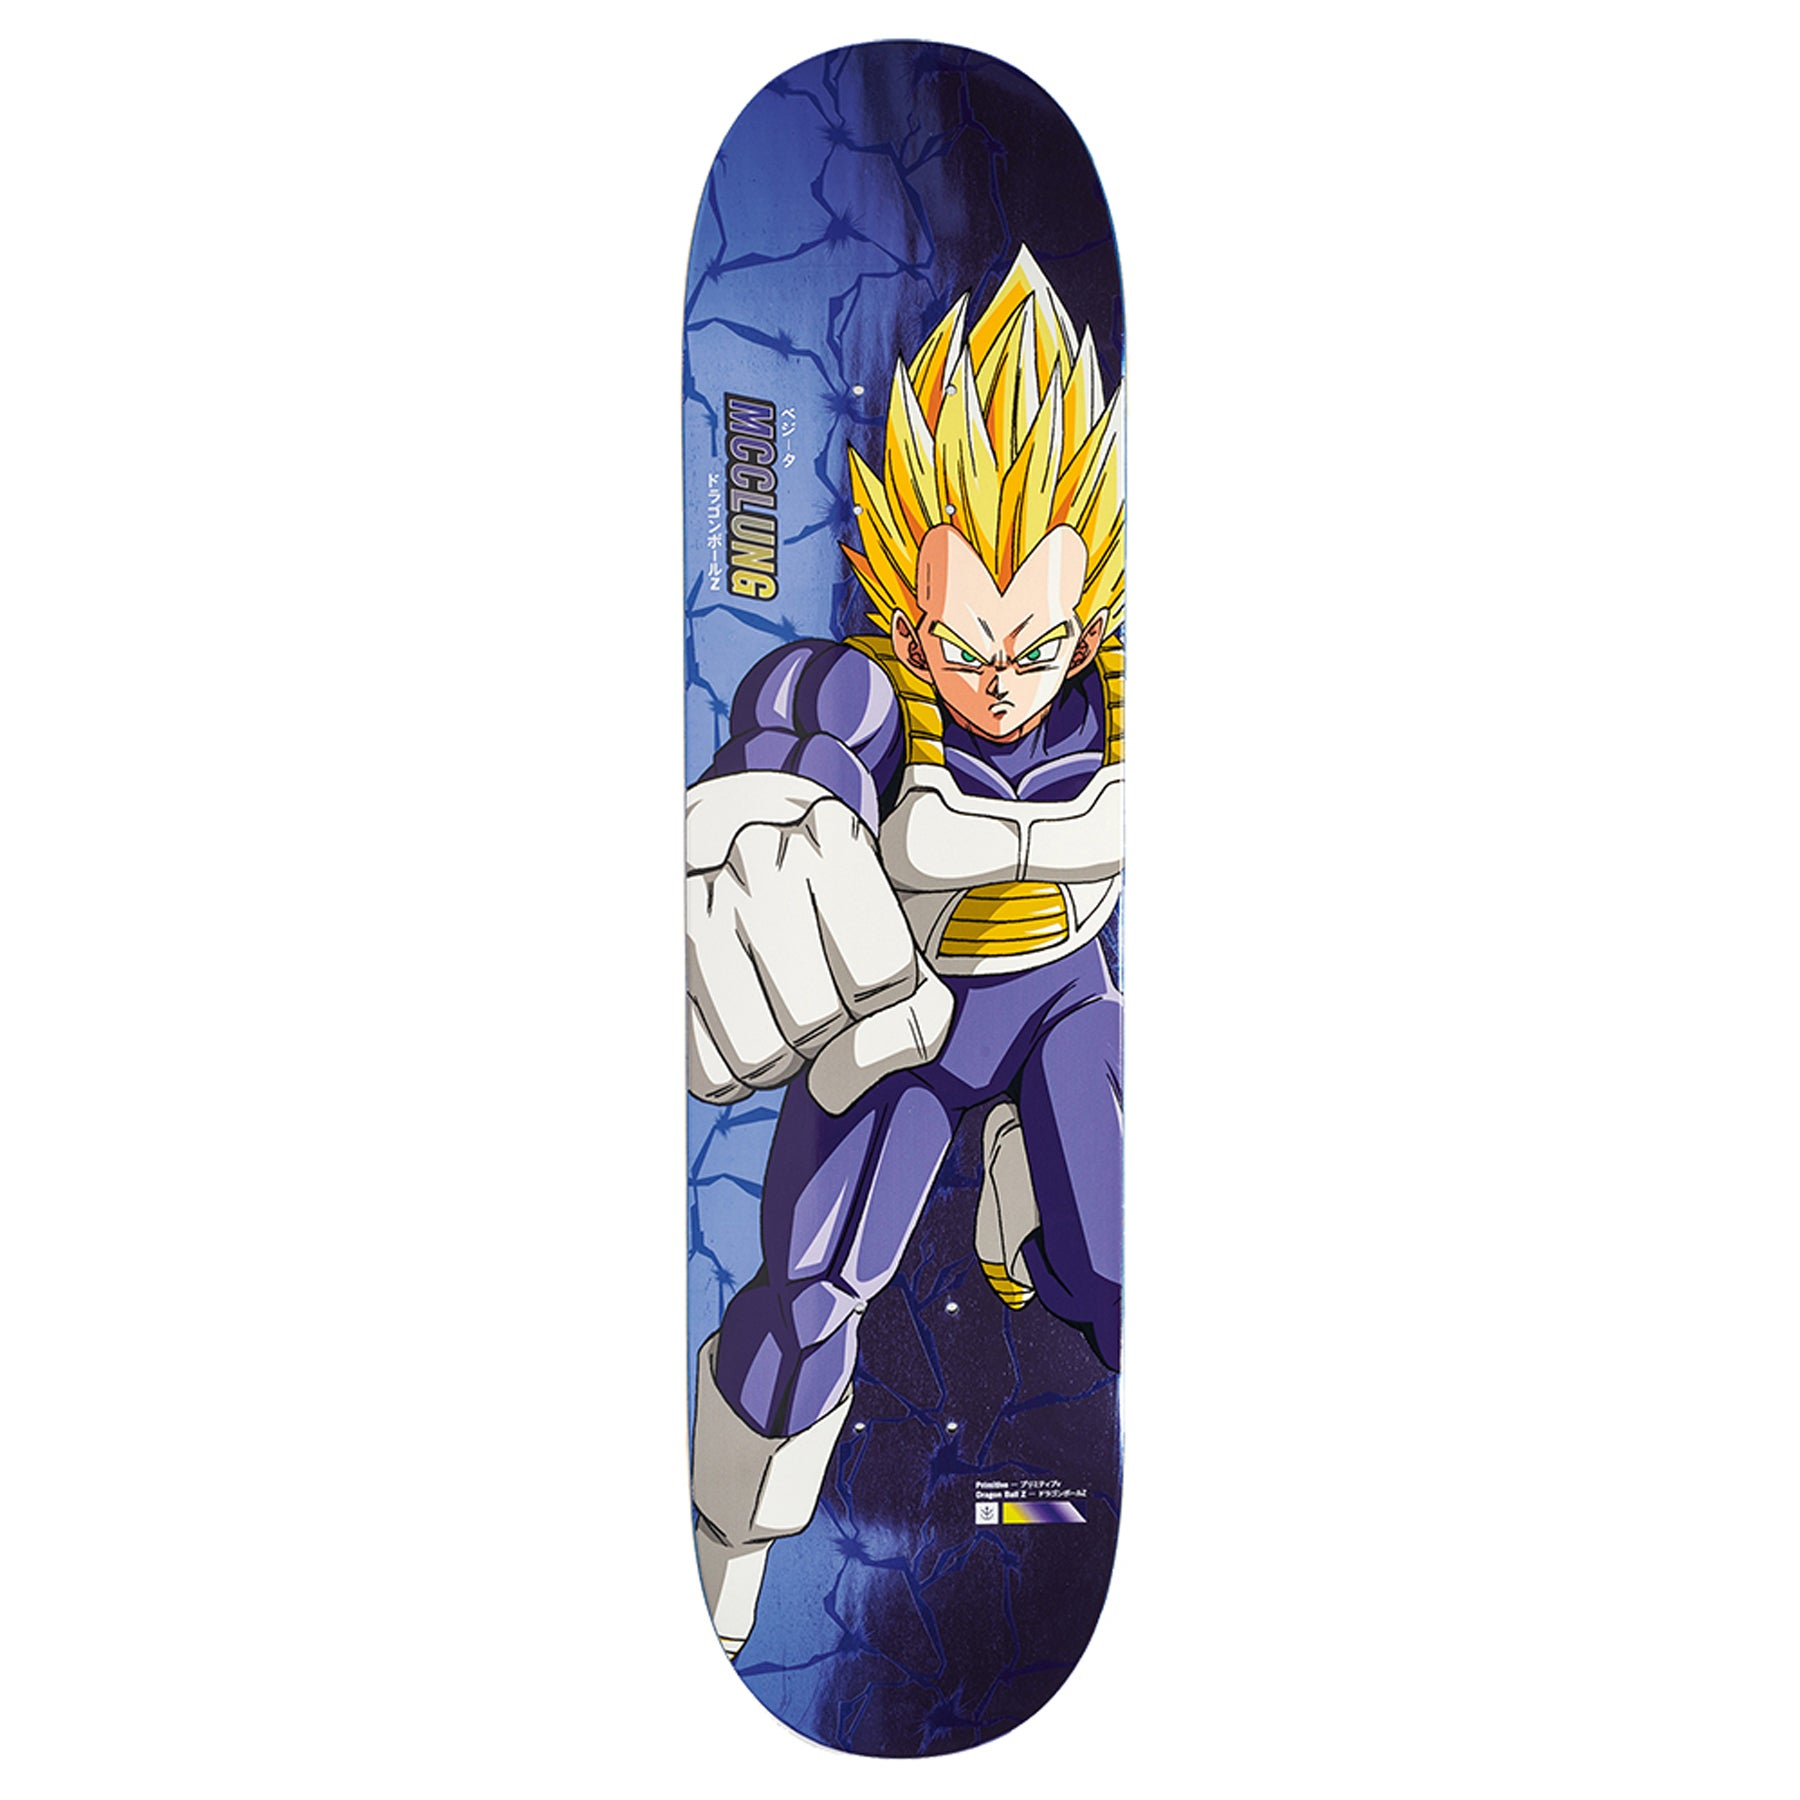 Primitive Mcclung Vegeta 8 Inch Skateboard Deck - Multi